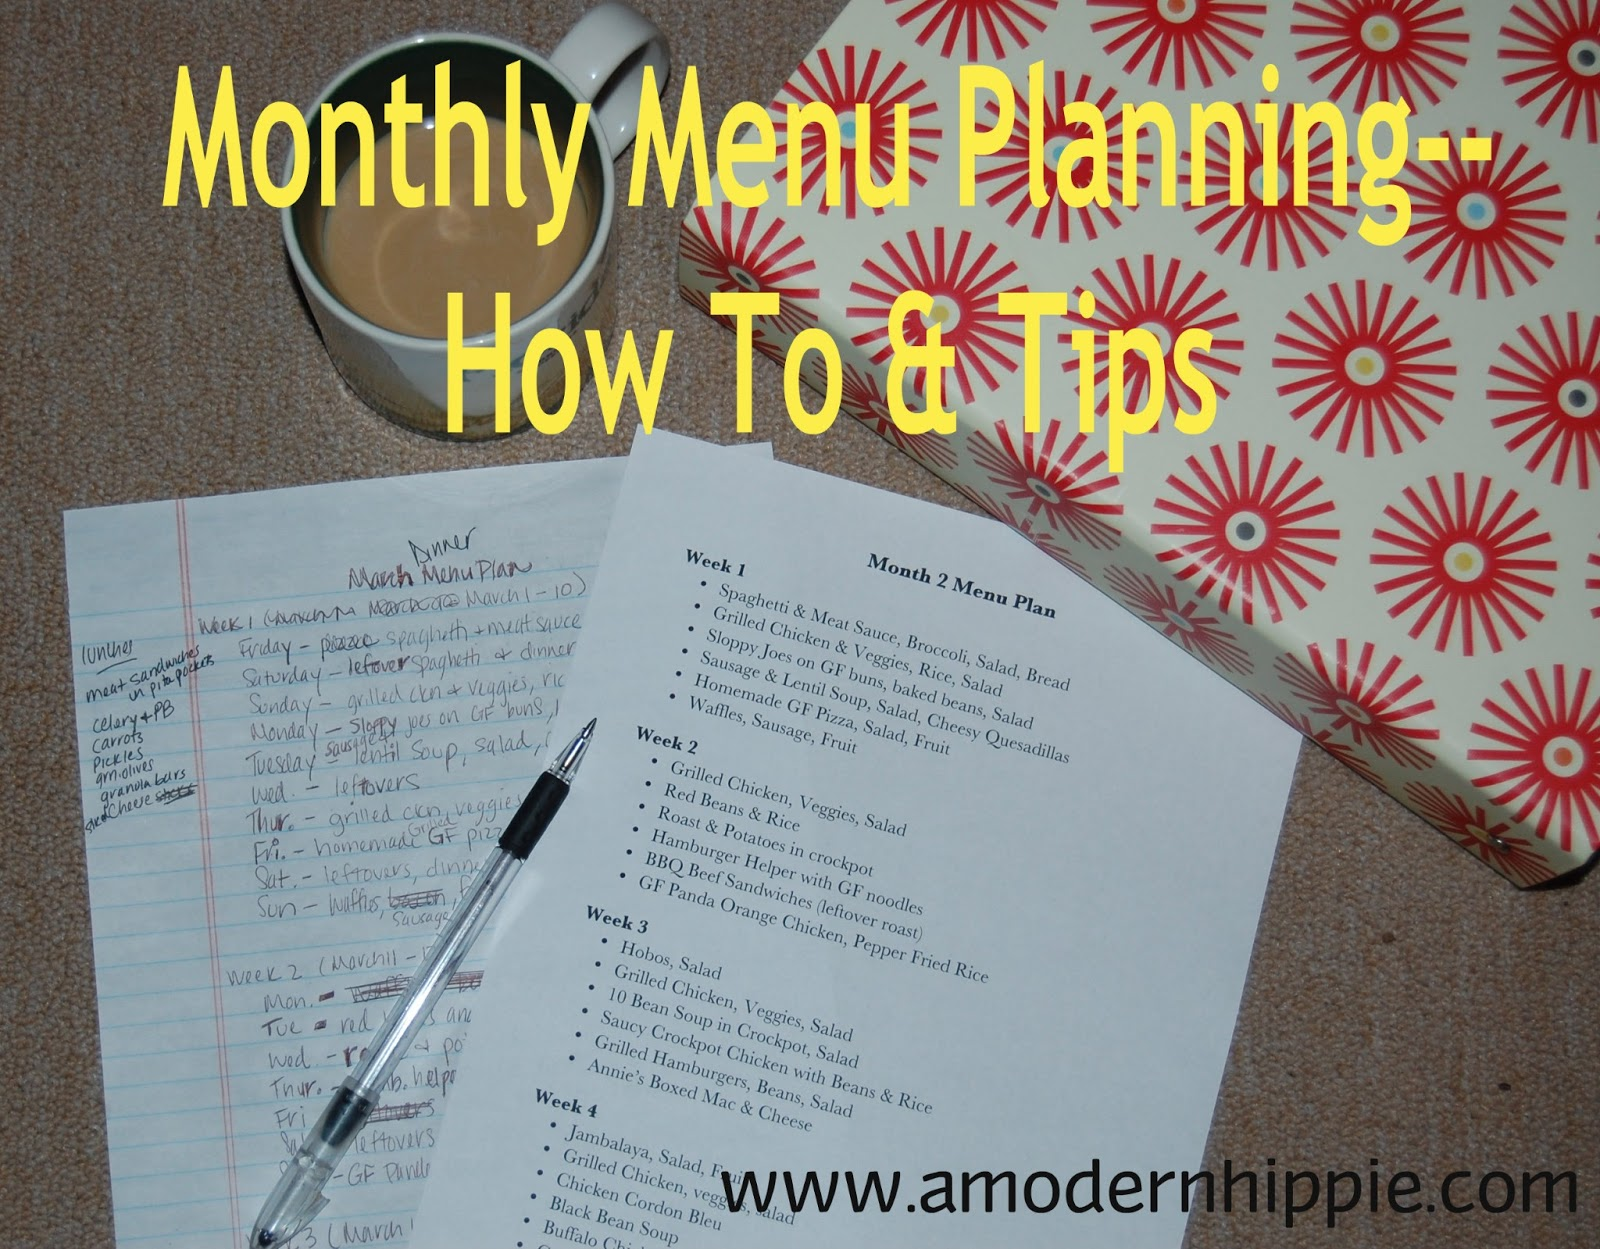 A Modern Hippie: Monthly Meal Planning How-To & Tips (Incl. Week 1 ...